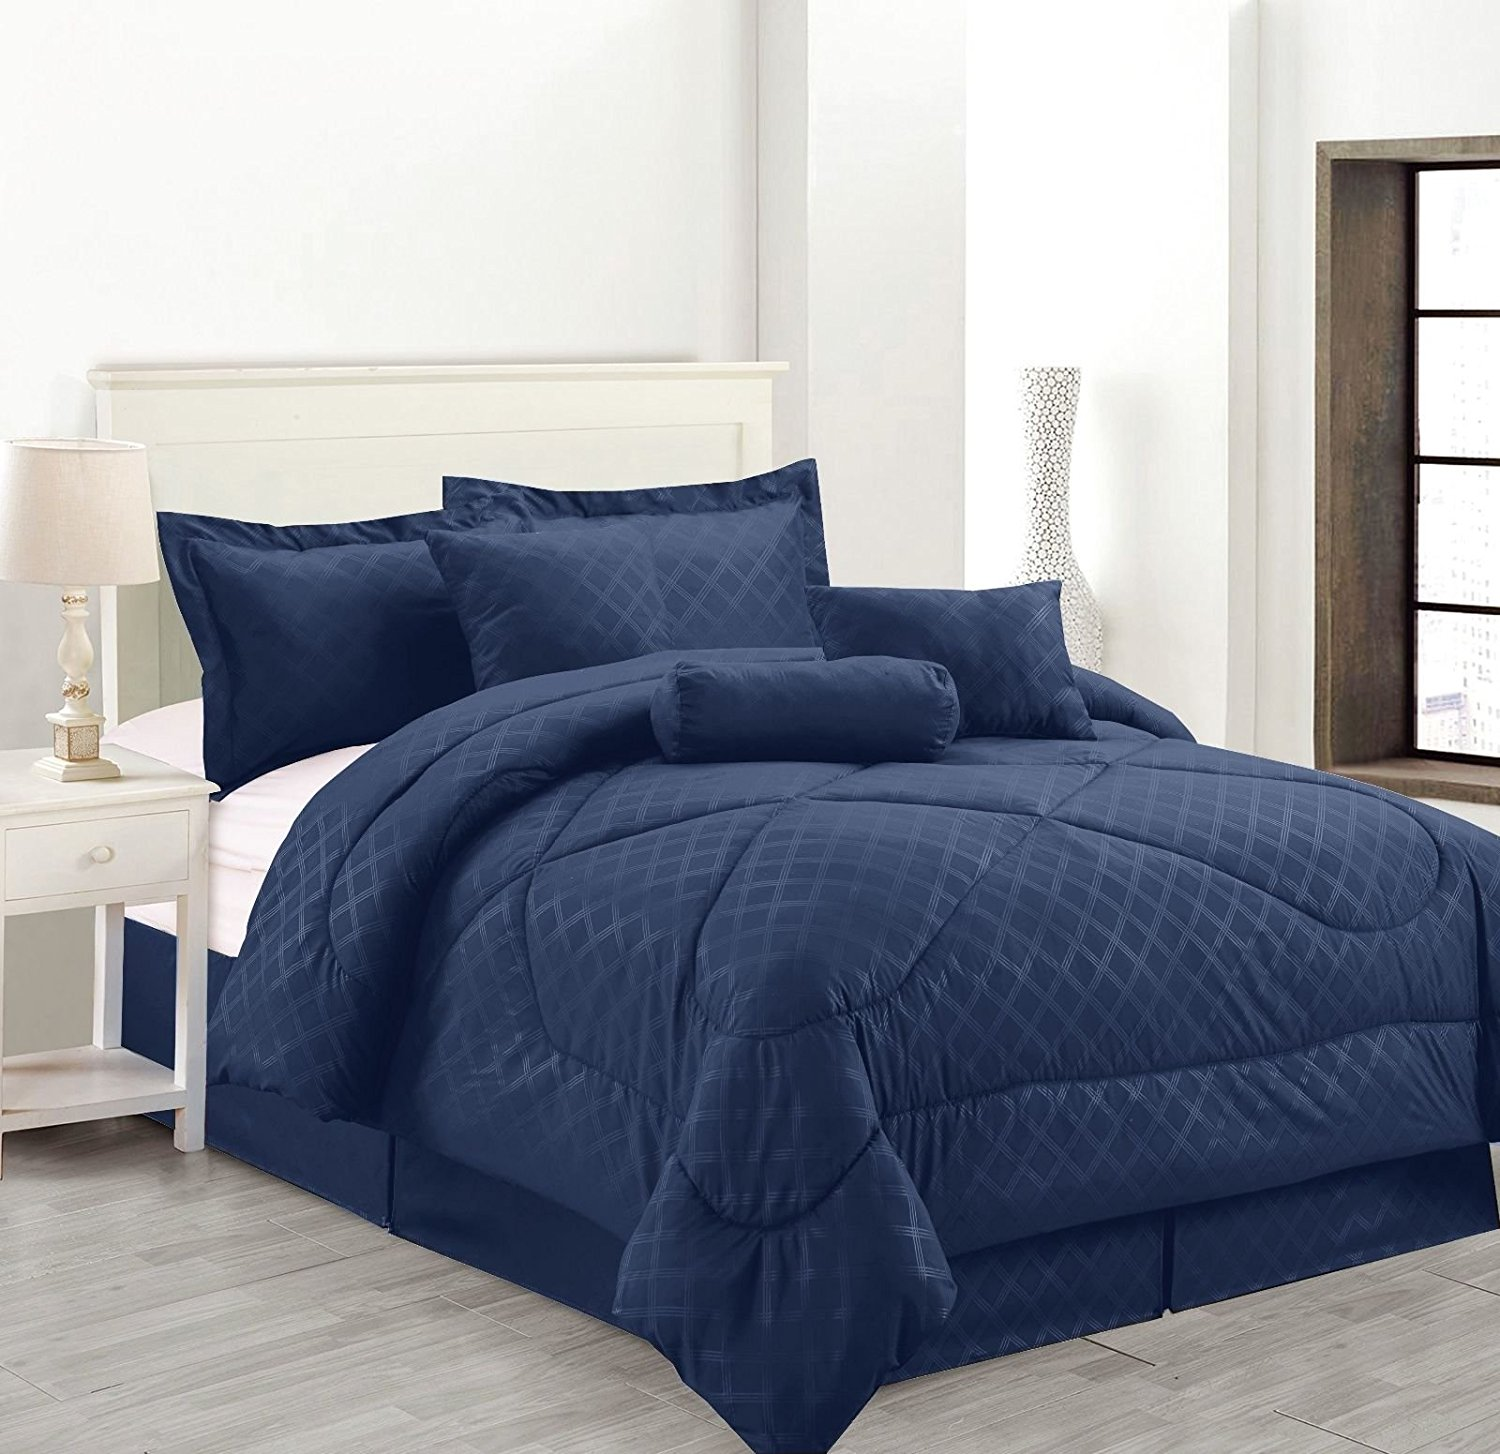 Luxury Hotel Queen Size 7-Piece Embossed Solid Over-Sized Comforter Set Bed in A Bag Navy Blue